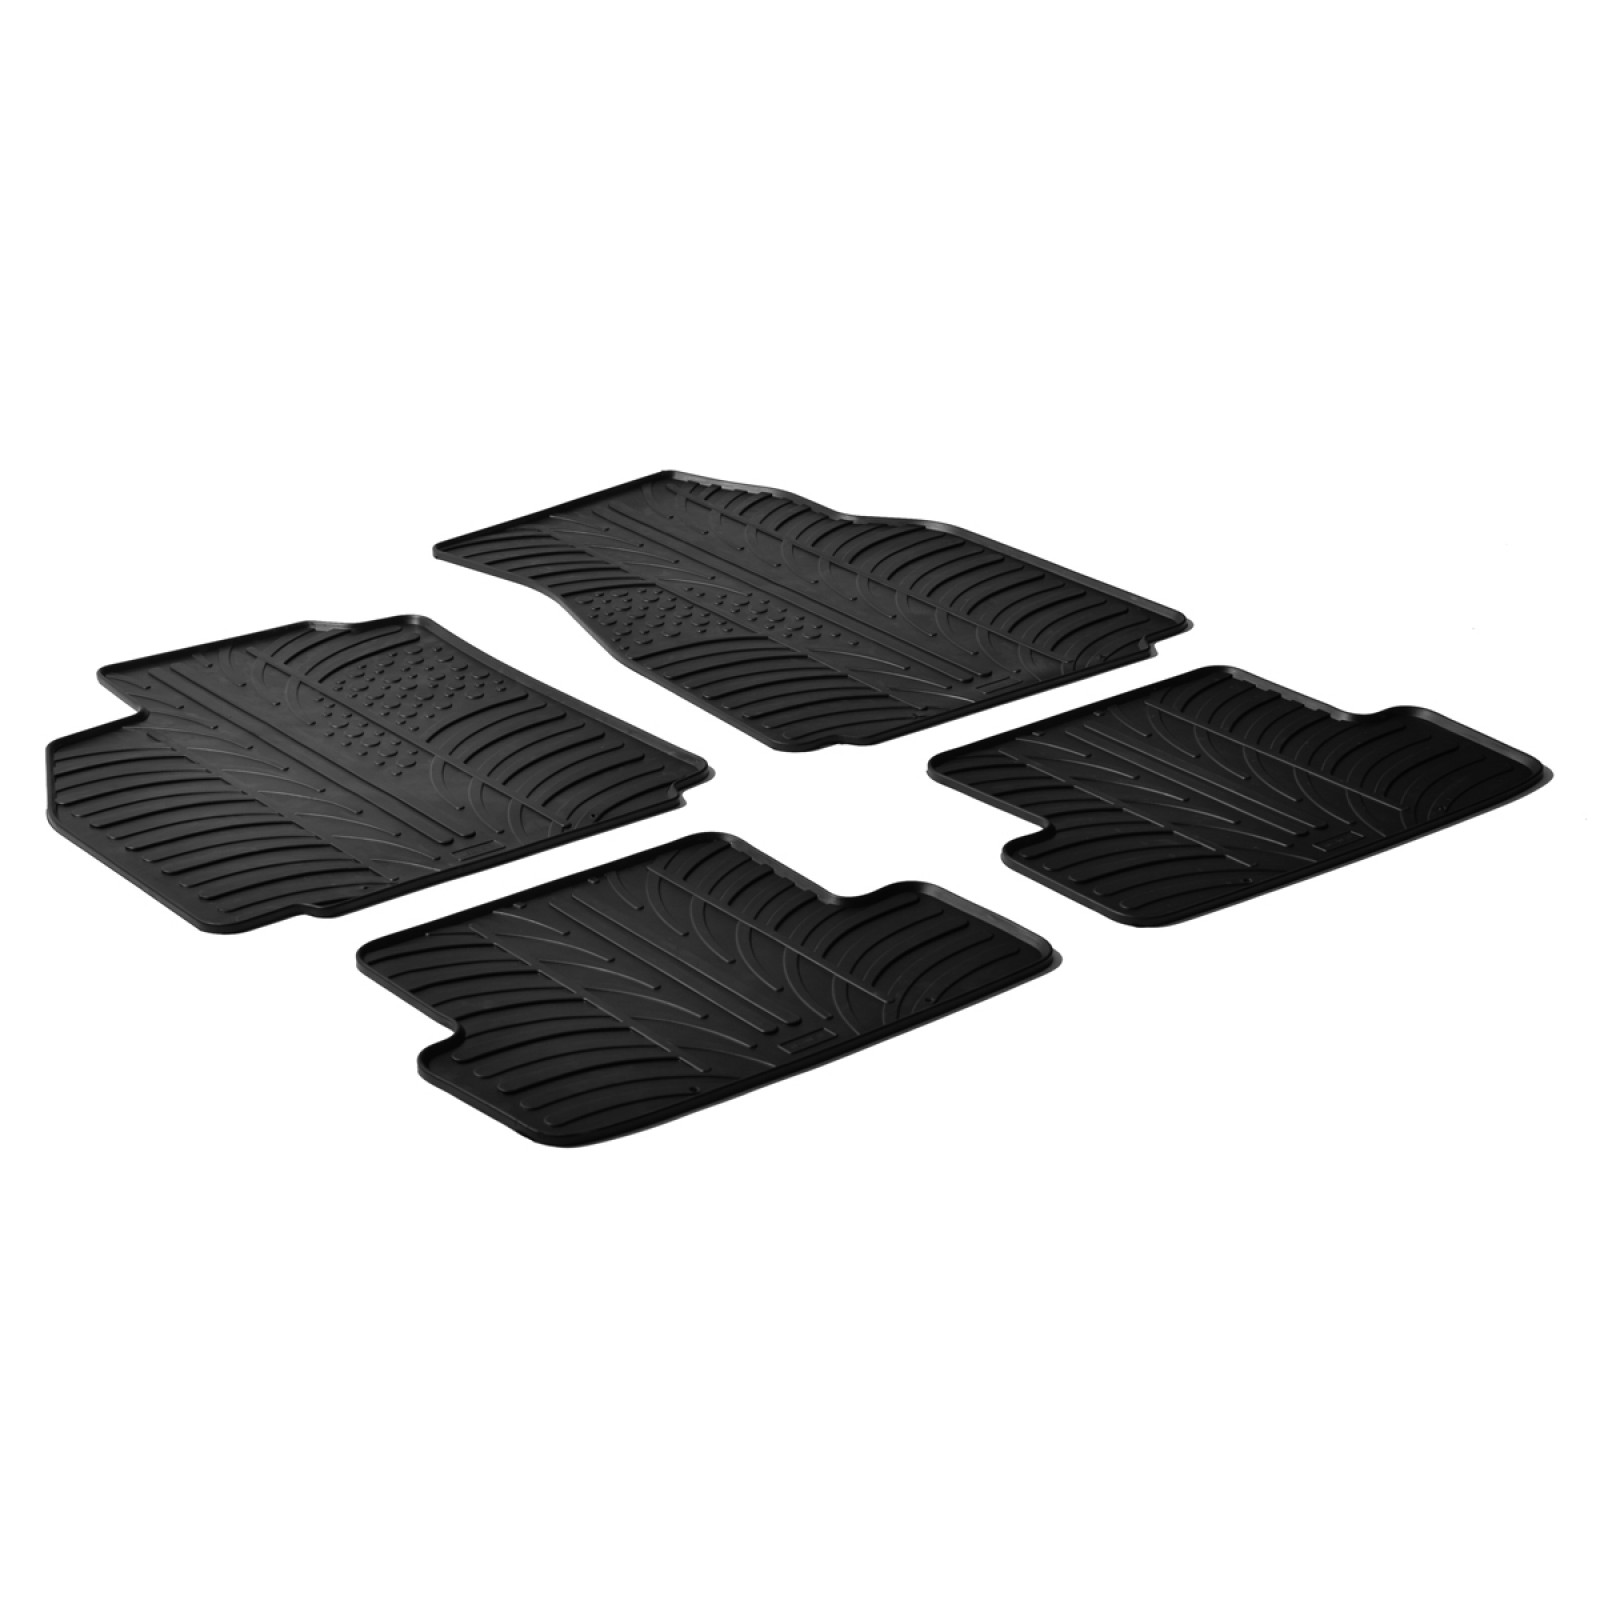 rubber mats for renault megane ii. Black Bedroom Furniture Sets. Home Design Ideas